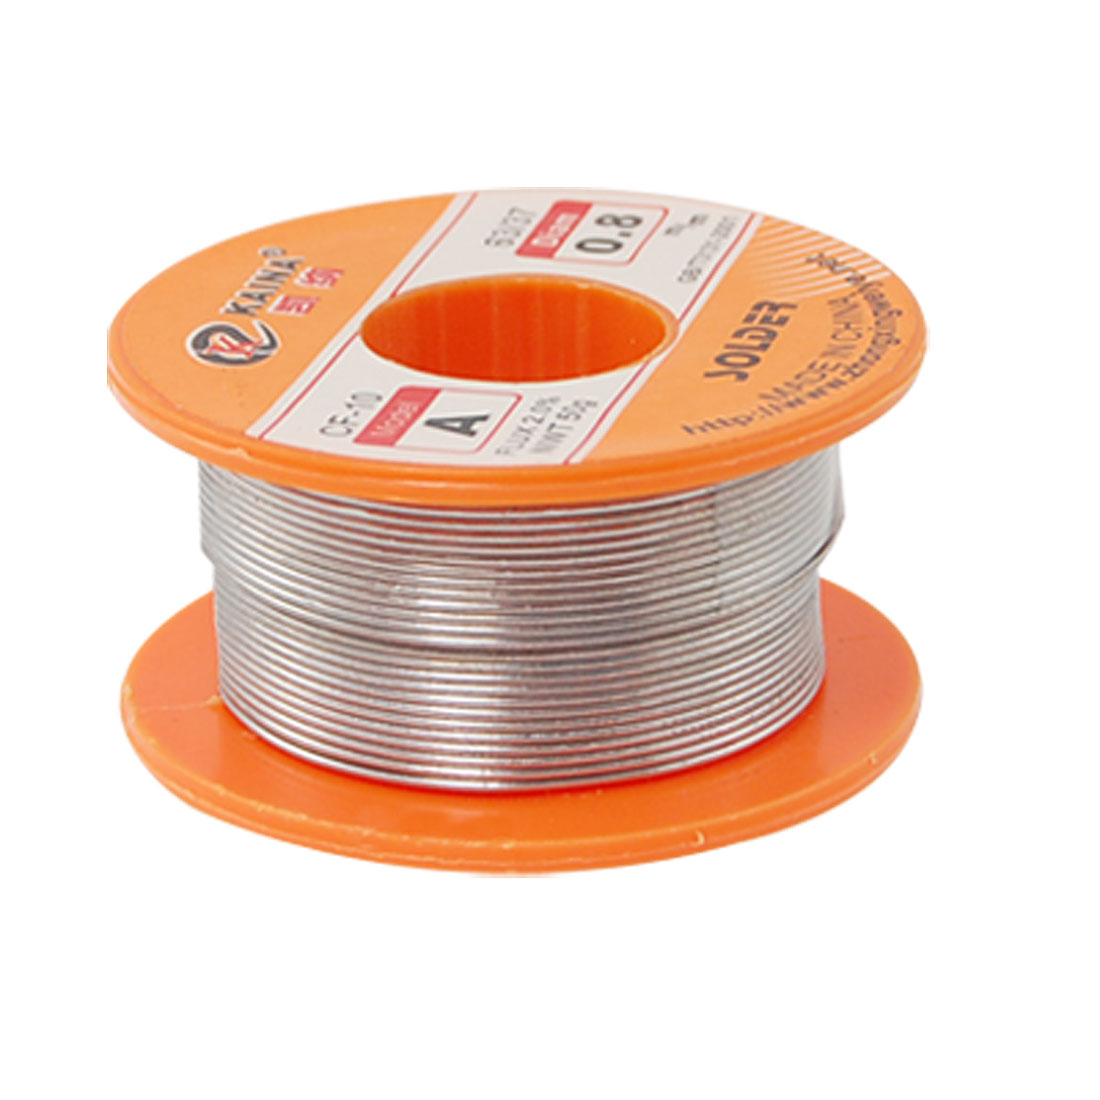 0.8mm 63/37 Tin Lead Roll Rosin Core Solder 2% Flux Soldering Wire Spool